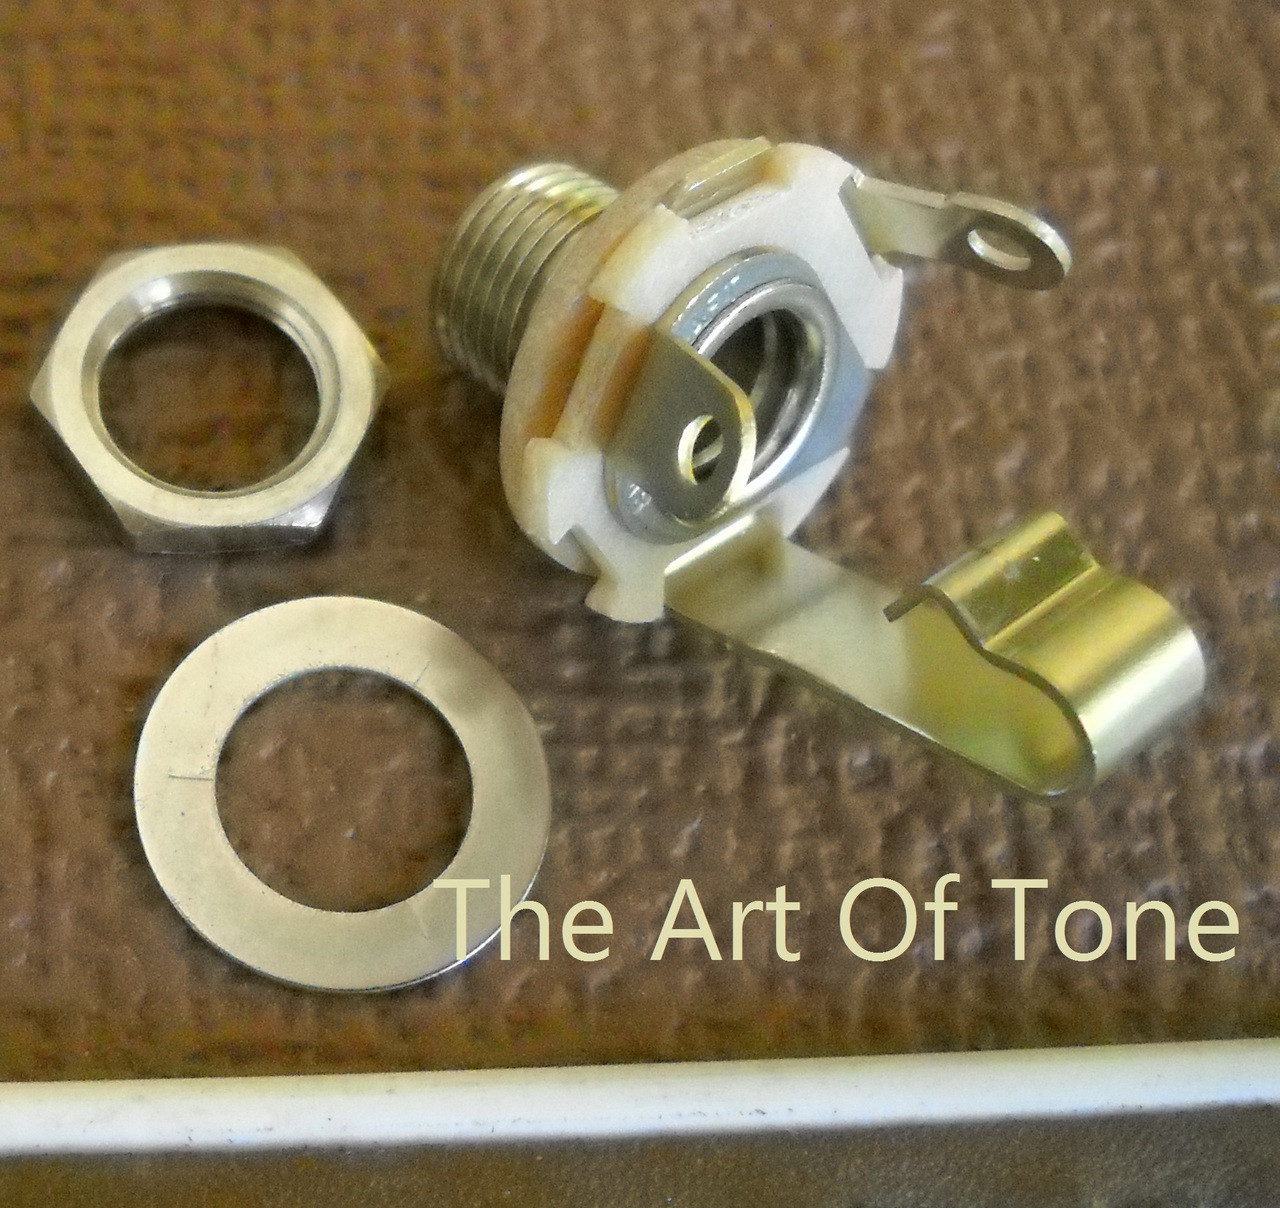 Wiring Kit Gibson Les Paul Long Shaft Cts Taot 500kxl Pots Switchcraft Diagram Mono Jack J11 The Art Of Tone